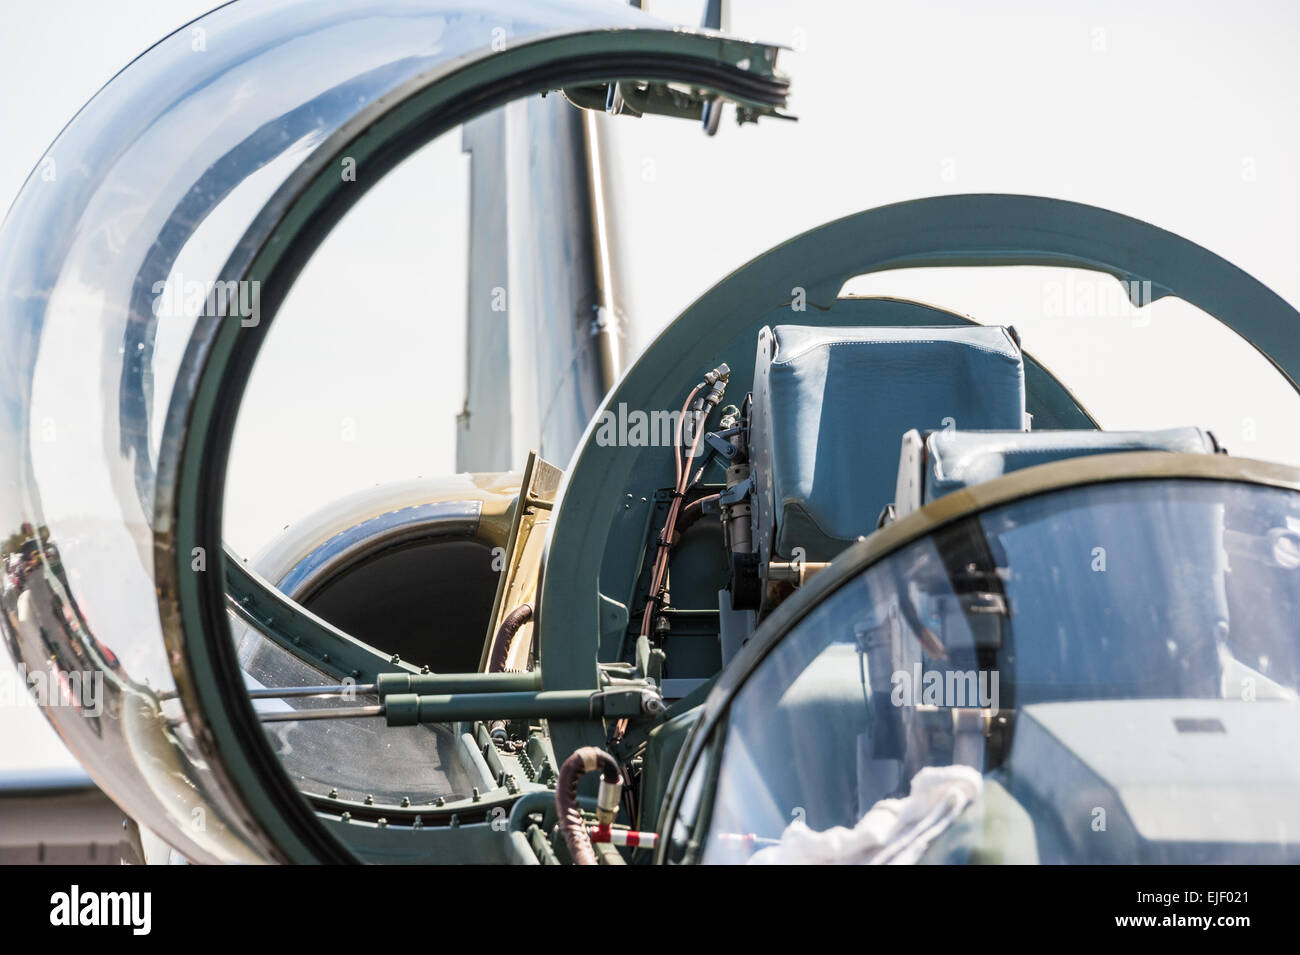 Cockpit of Russian fighter jet. - Stock Image